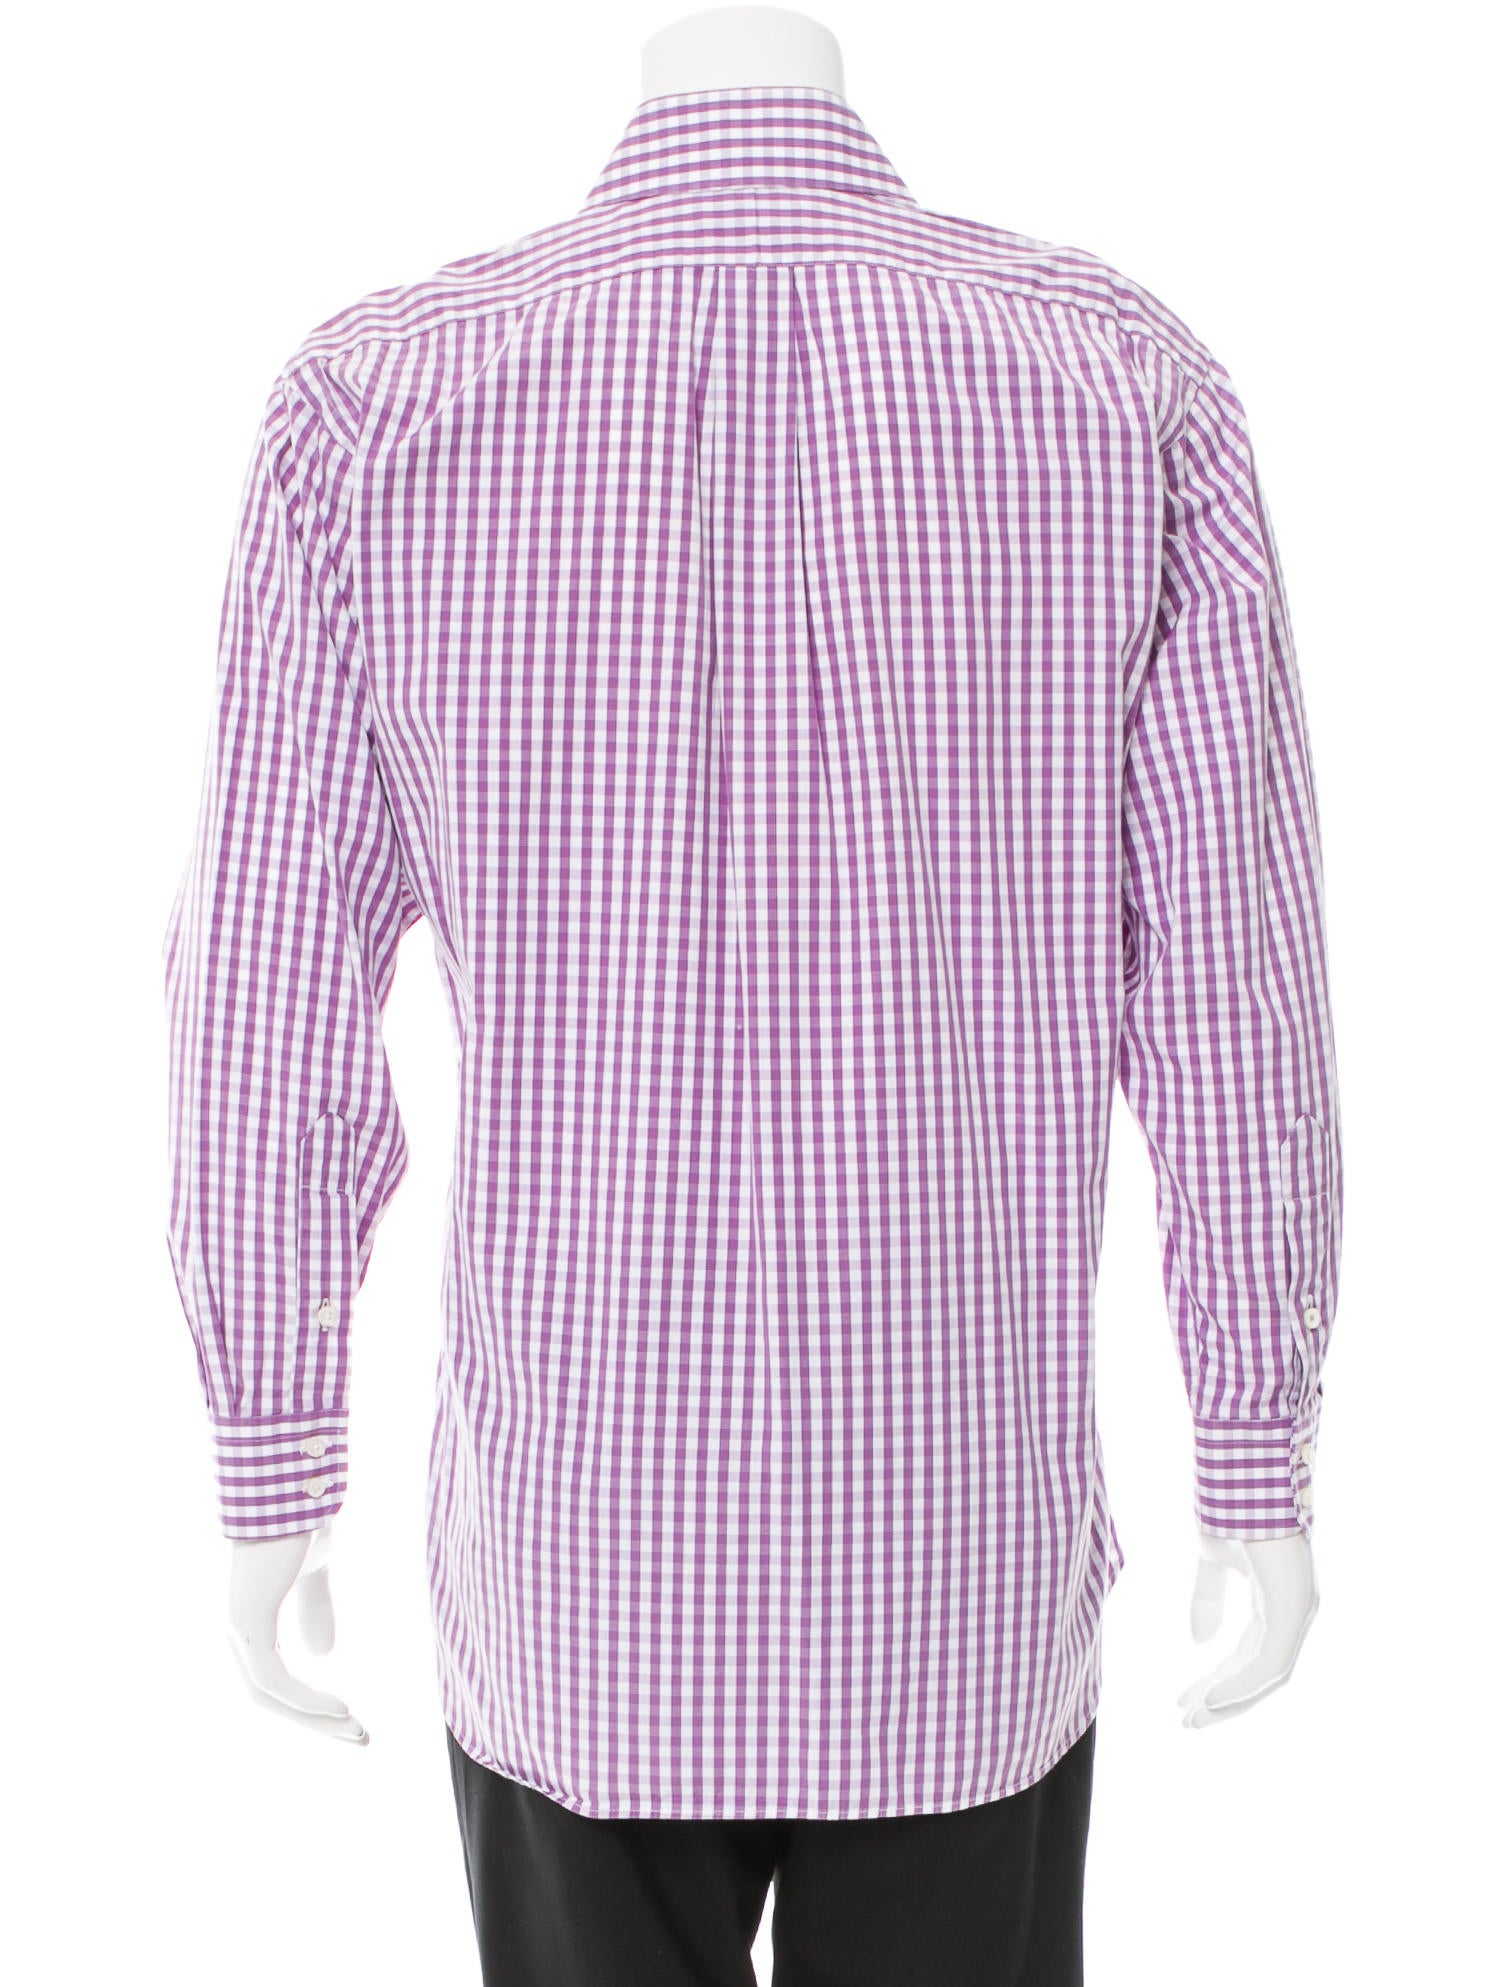 Burberry London Gingham Button Up Shirt Clothing